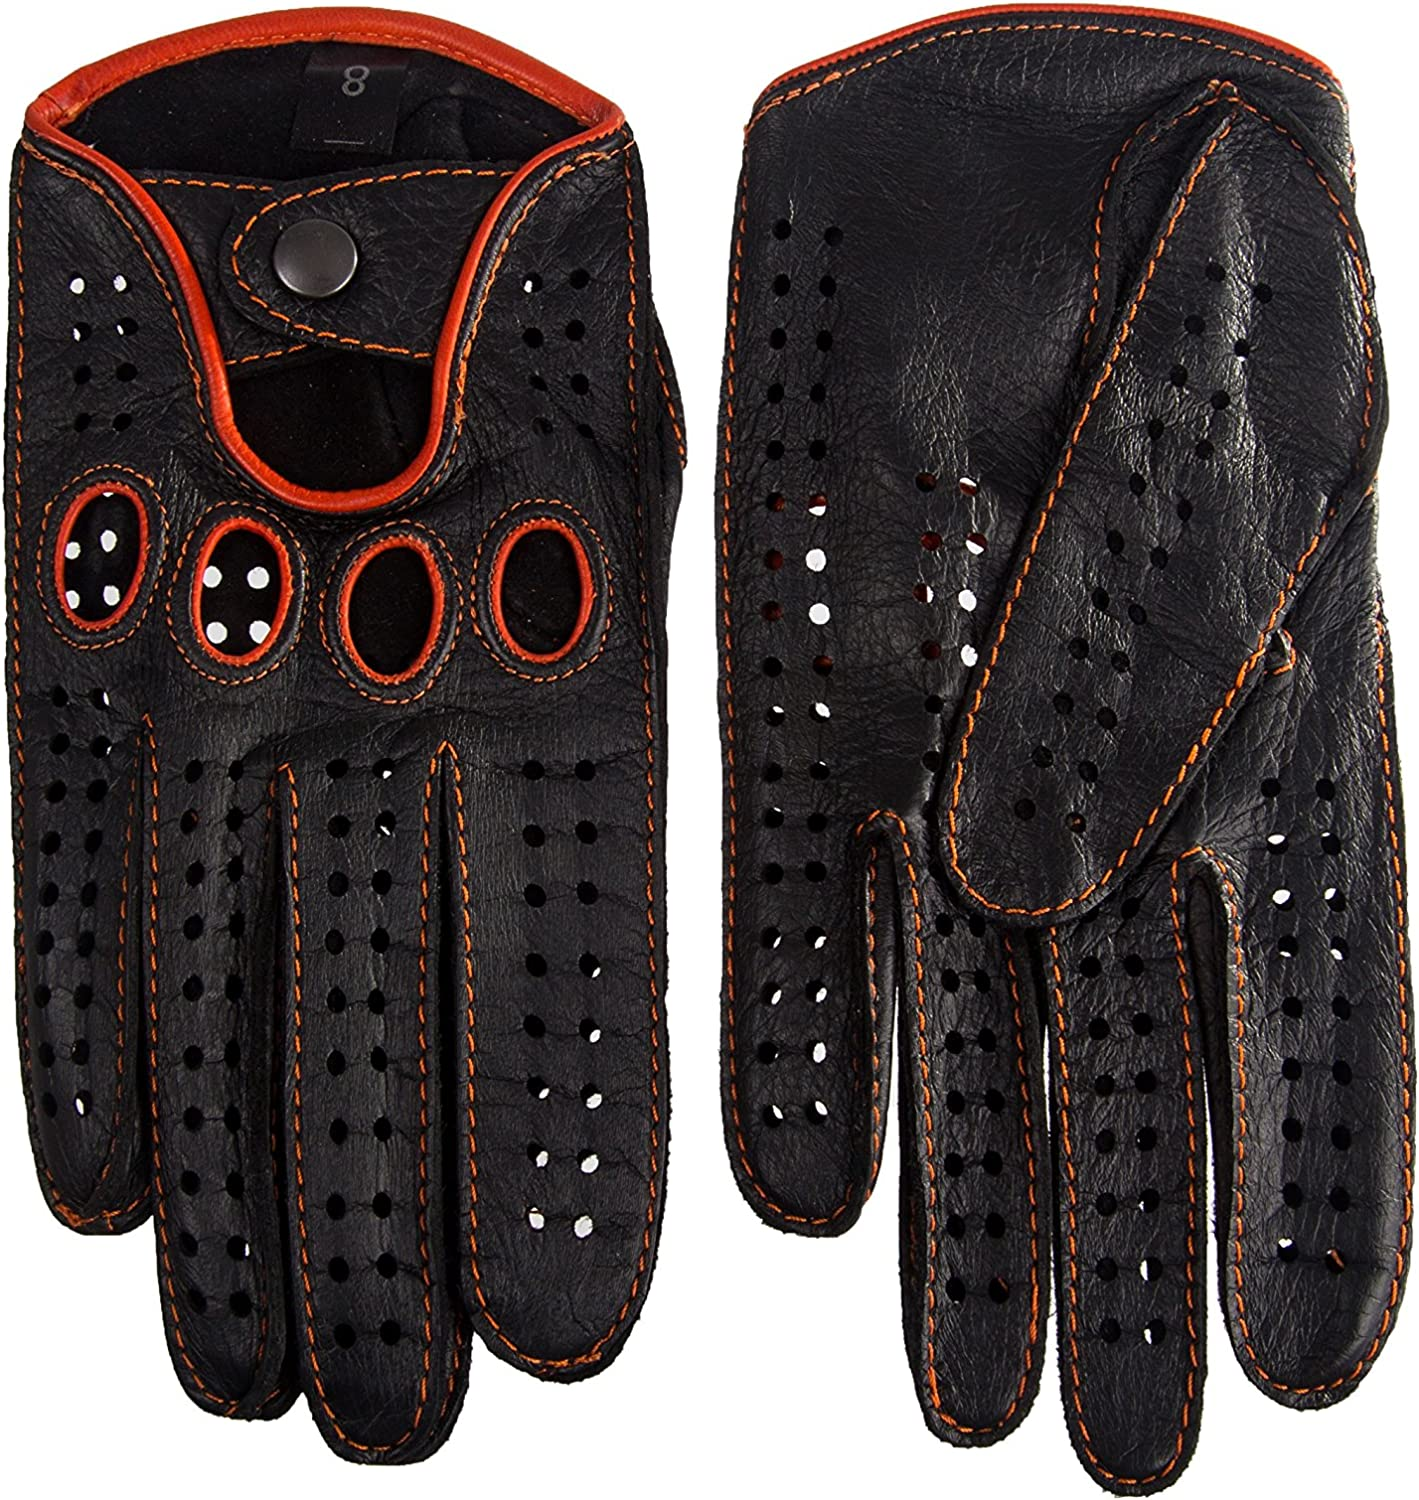 Classic English Leather Driving Gloves Chauffeur Vintage Fashion Gloves